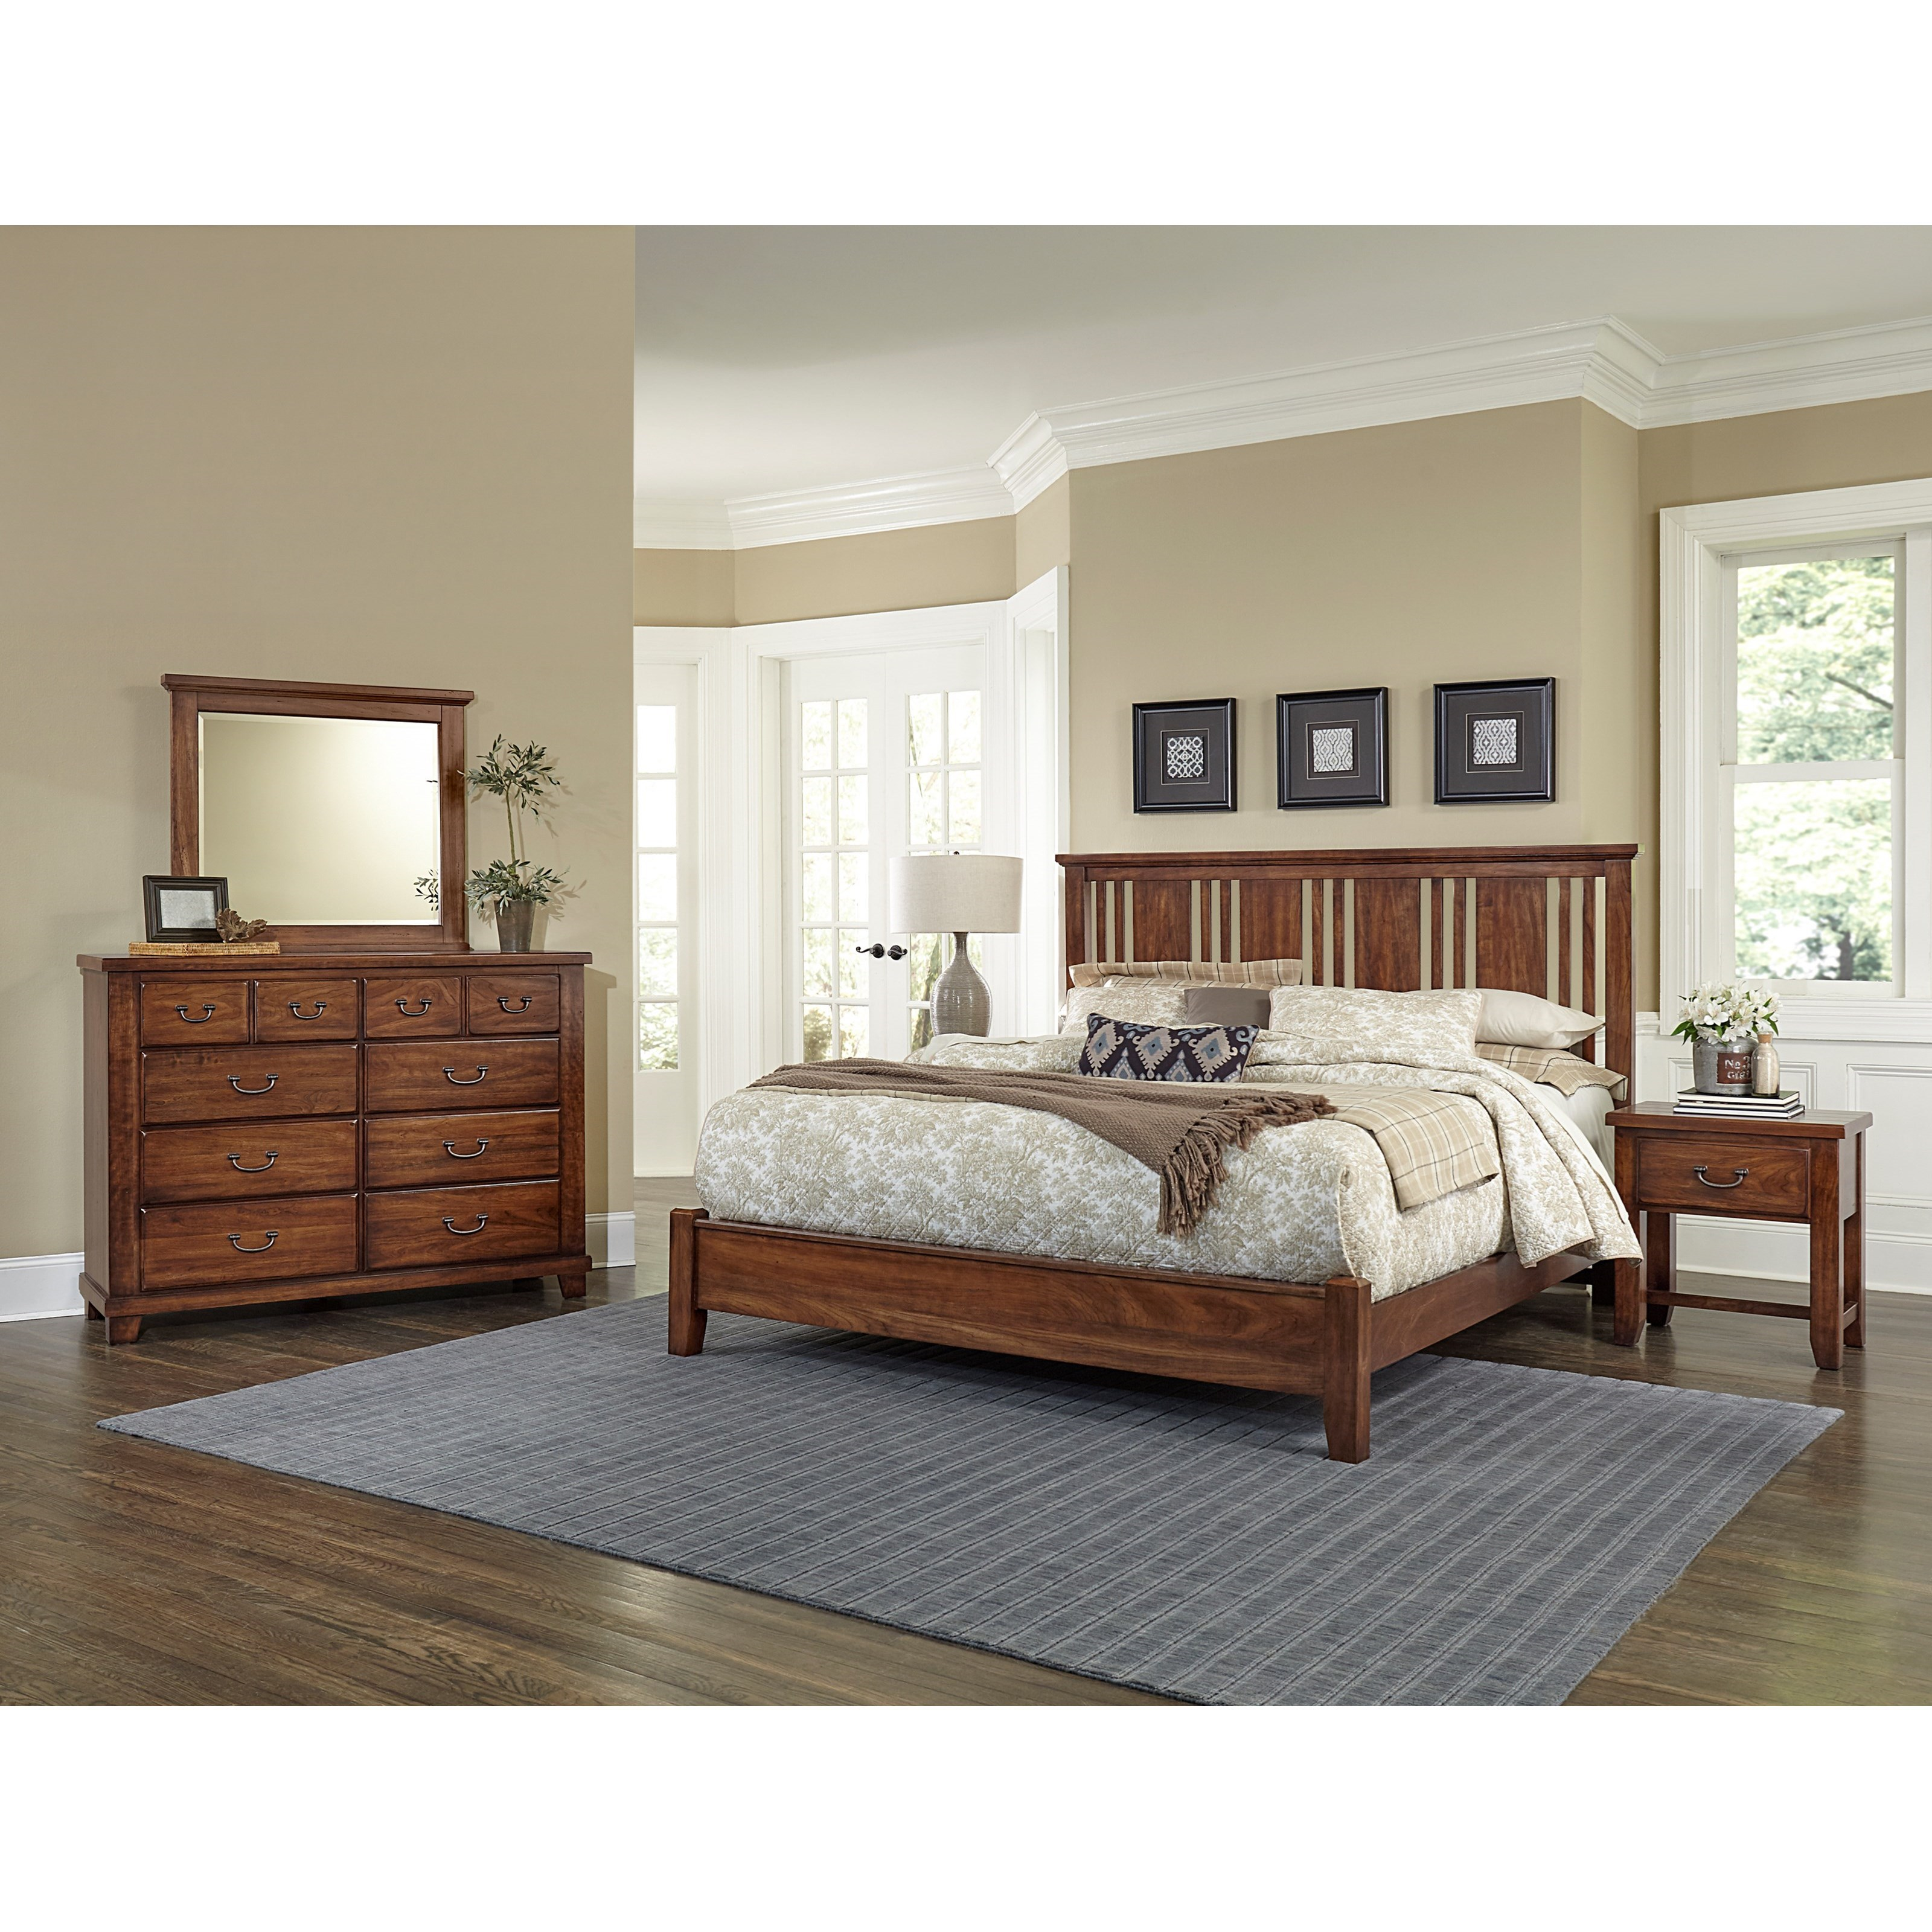 s threshold item width cherry height bedroom king cherryking american bassett trim olinde products group vaughan